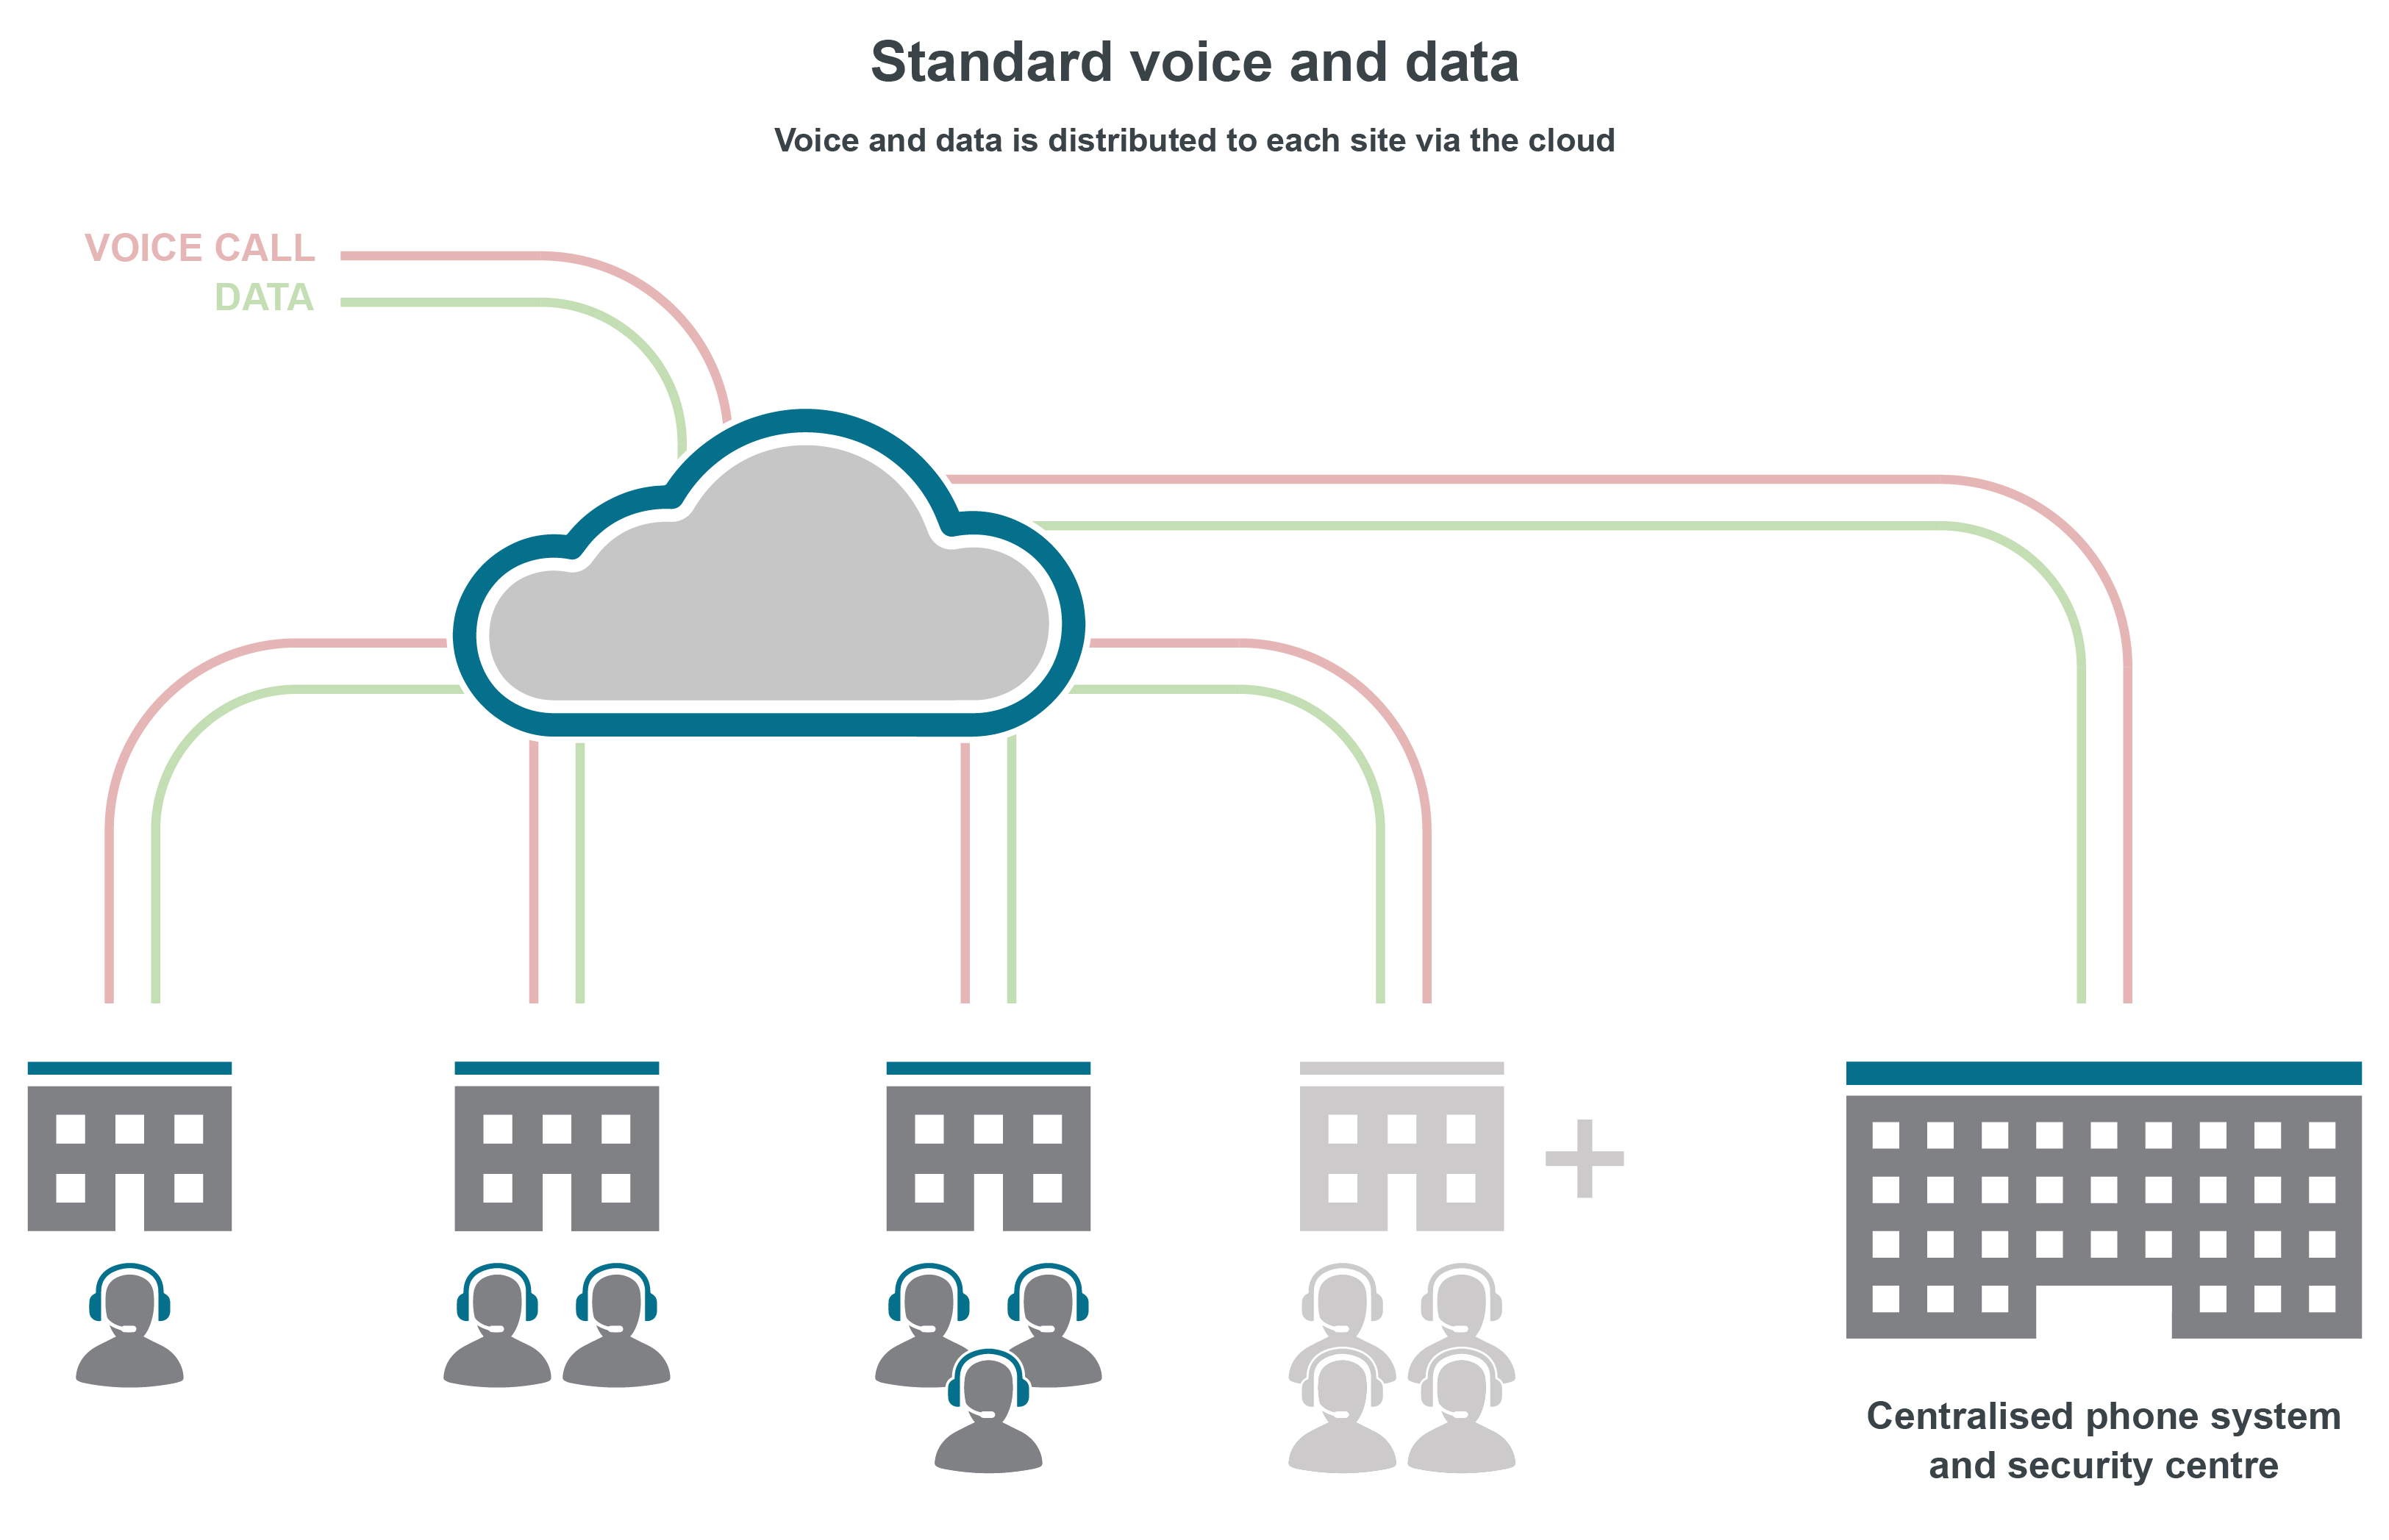 Standard voice and data telephone systems